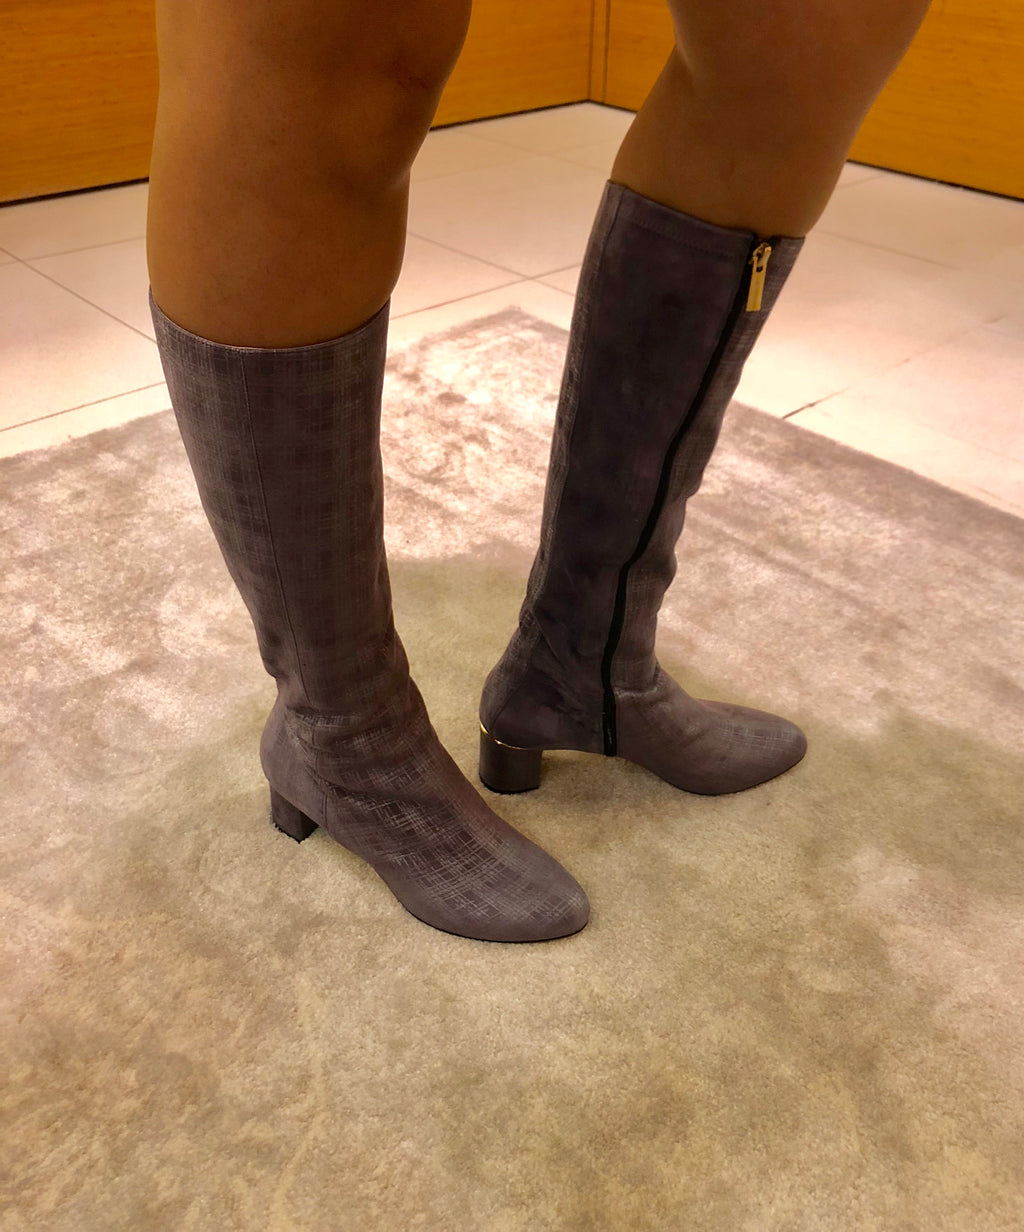 Knee-high light purple boots with a low heel